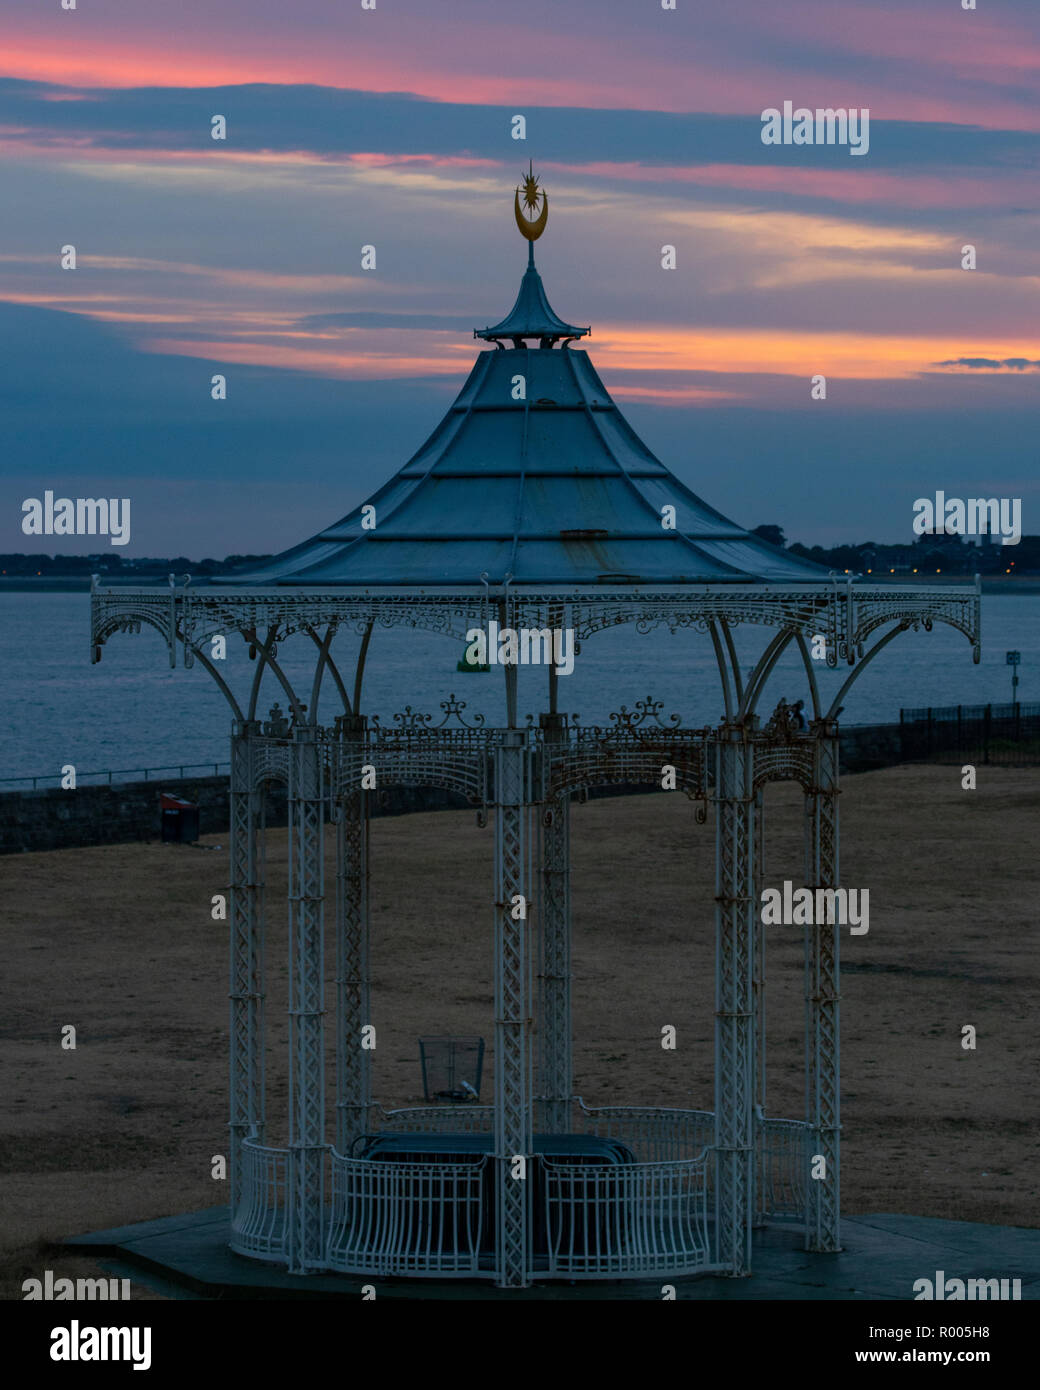 Southsea victorian bandstand roof with star and half moon crest at sunset in Southsea - Stock Image